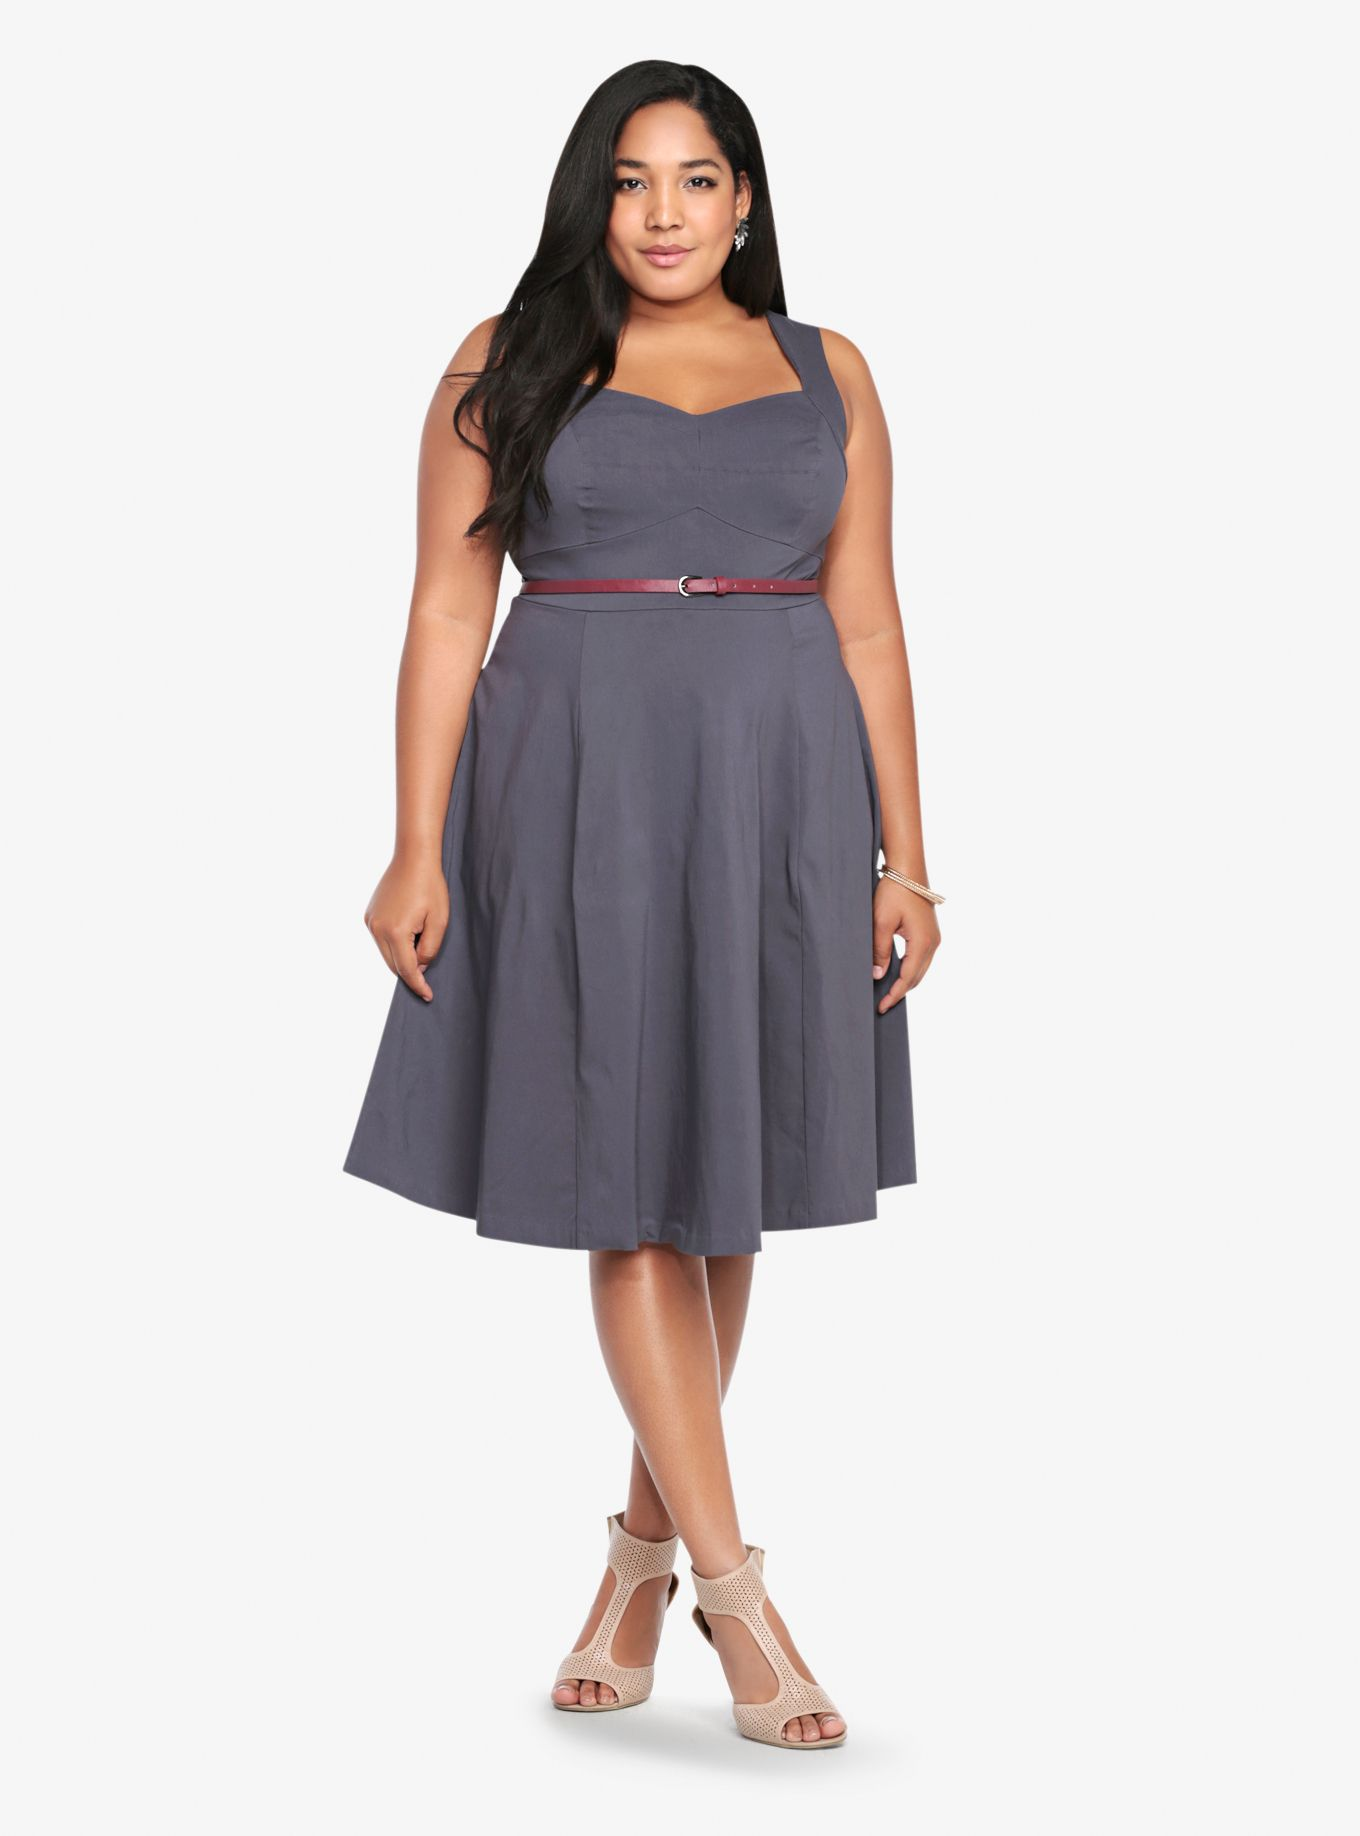 Dress size 24 torrid dress 24 torrid black and white draped v neck - 10 Plus Size Wear To Work Options To Play In